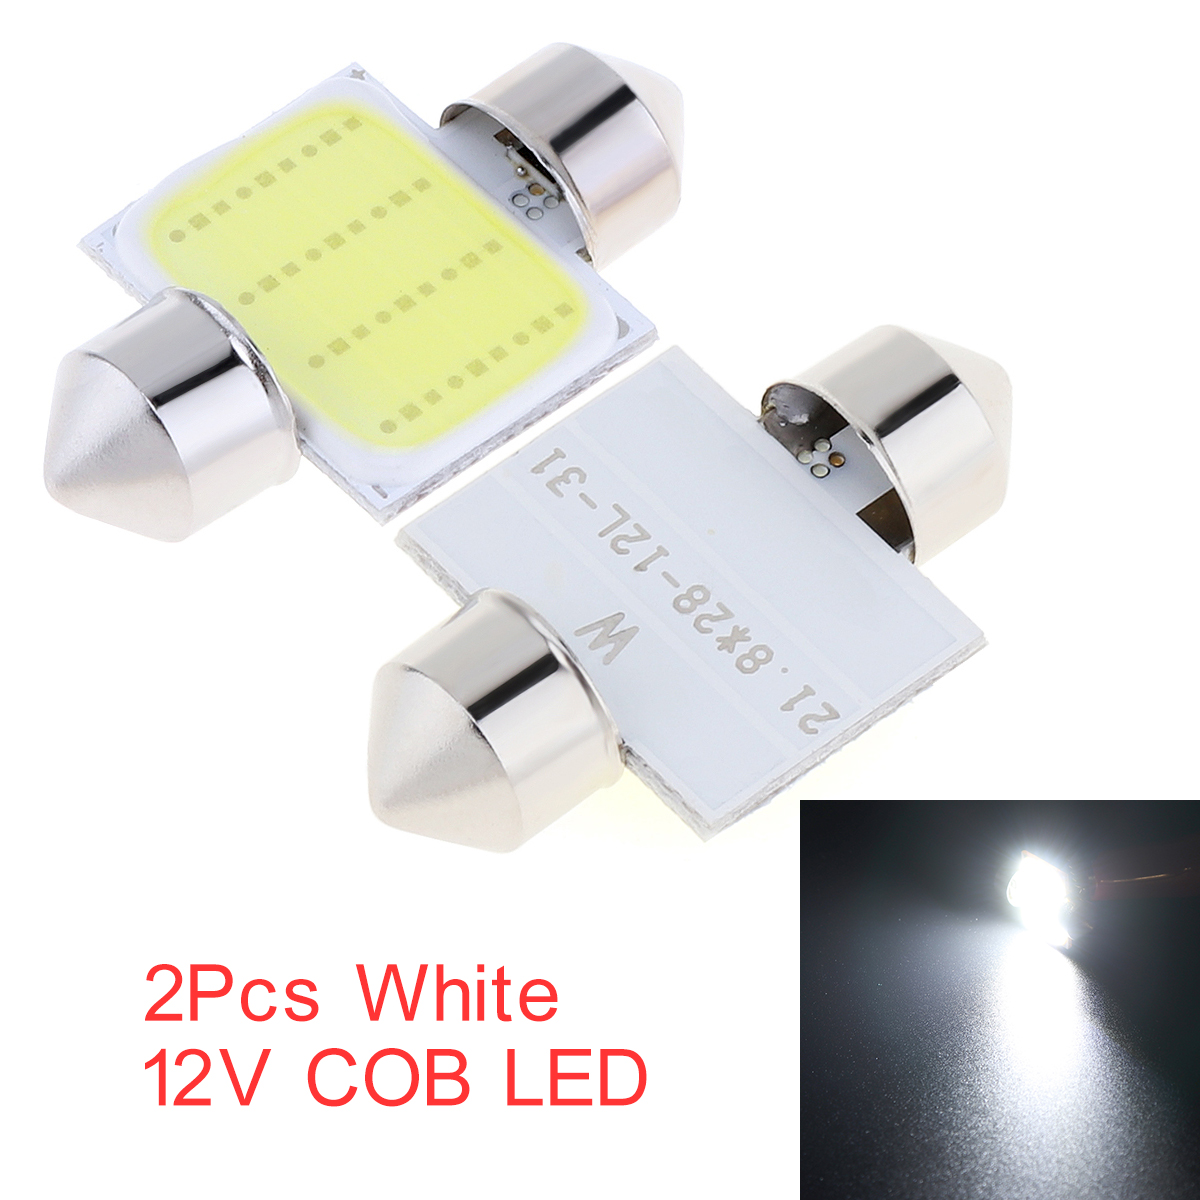 2pcs/lot LED Dome light 12  SMD CoB  Car Auto Interior Map Dome License Plate Replacement Light Kit White Lamp Set-in Car Headlight Bulbs(LED) from Automobiles & Motorcycles